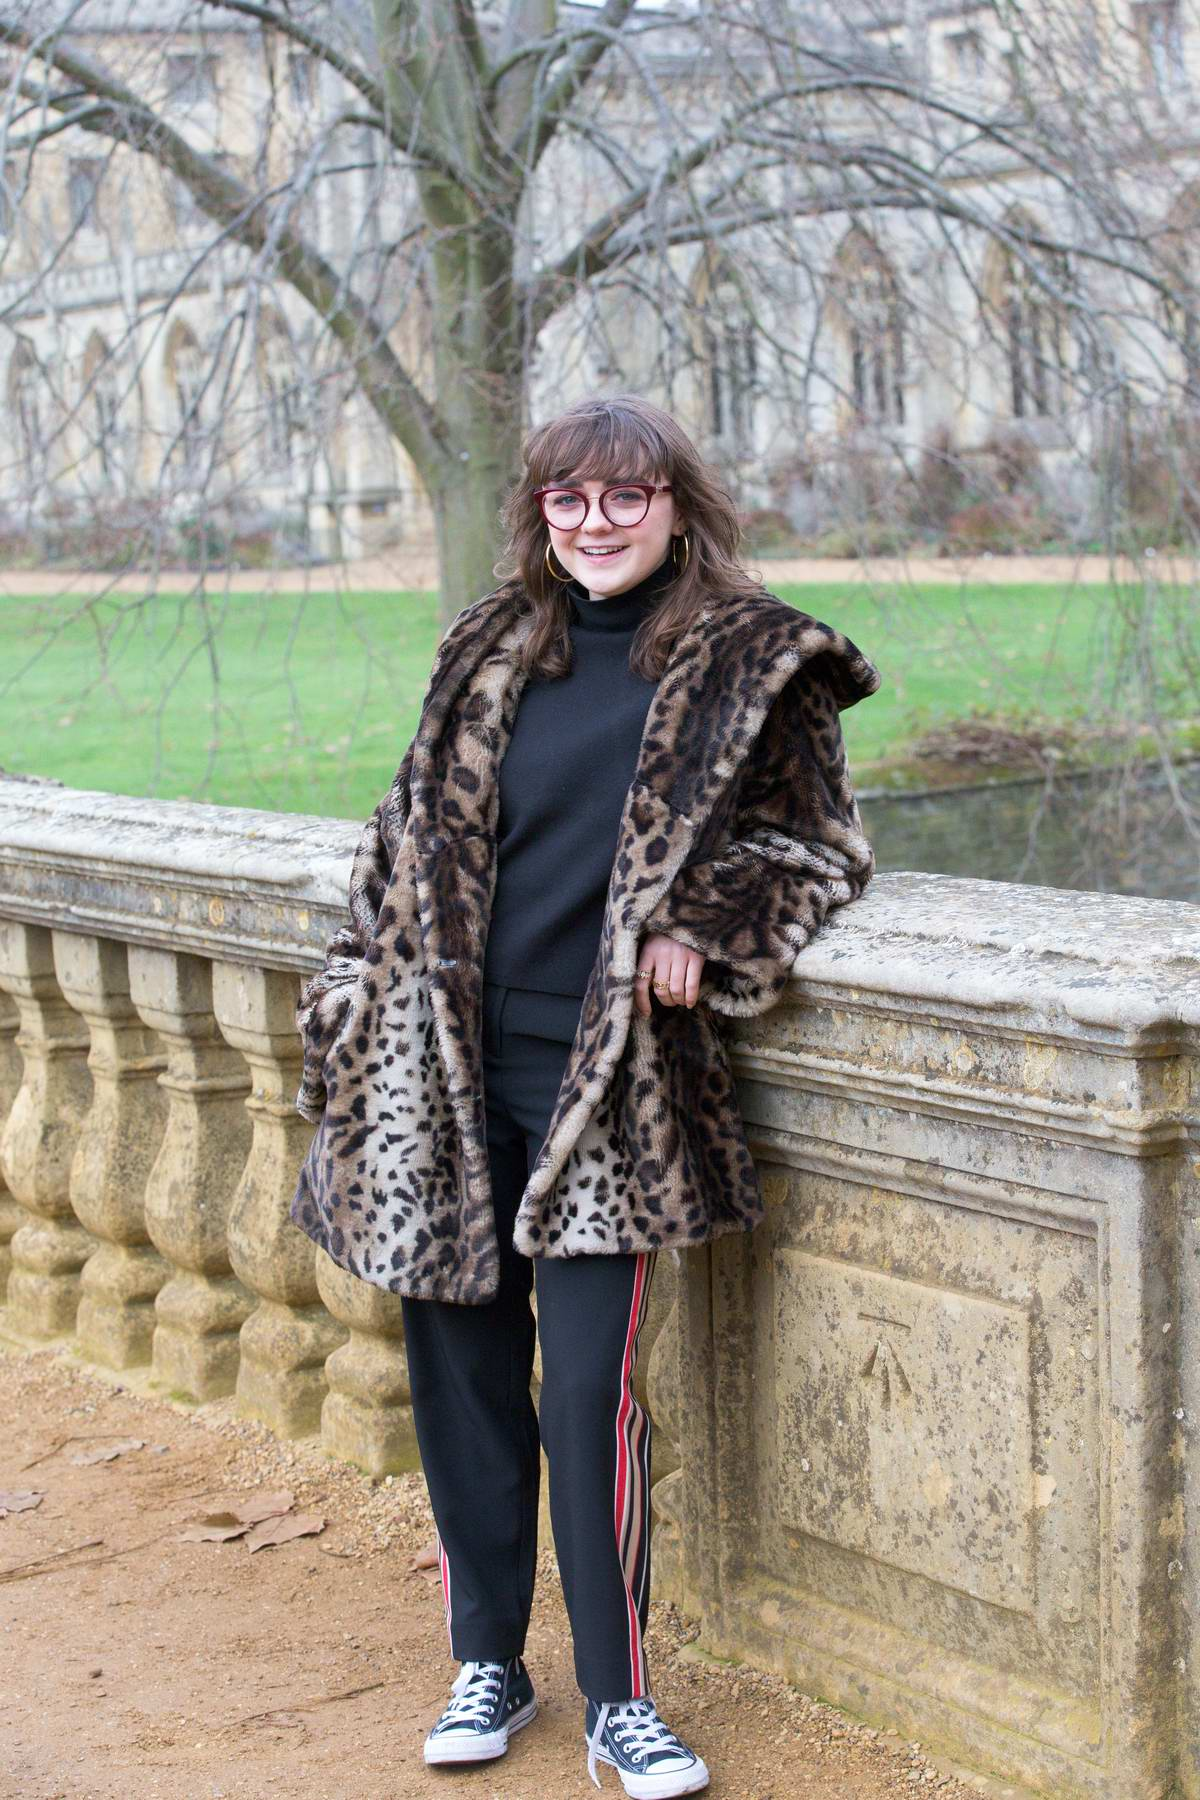 Maisie Williams spotted in a leopard print coat while visiting St. John's College in Cambridge University, UK